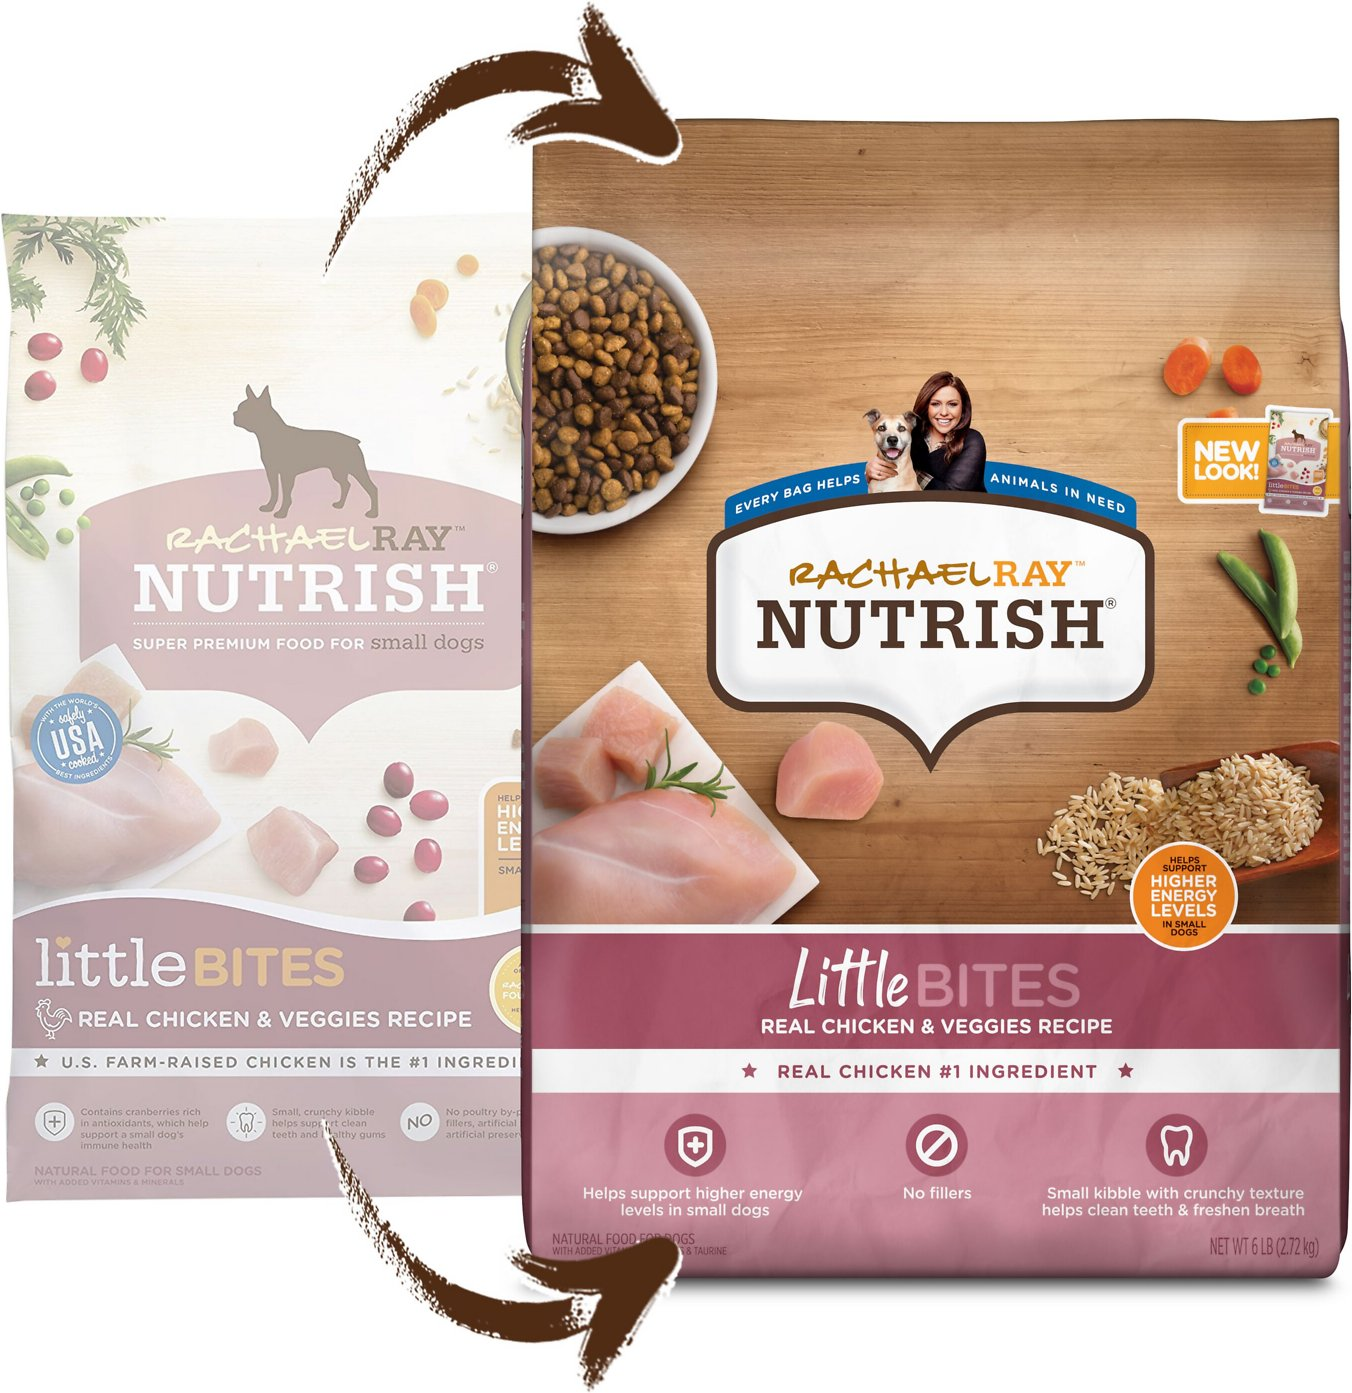 Rachael Ray Nutrish Little Bites Small Breed Natural Real Chicken & Veggies  Recipe Dry Dog Food, 6-lb bag